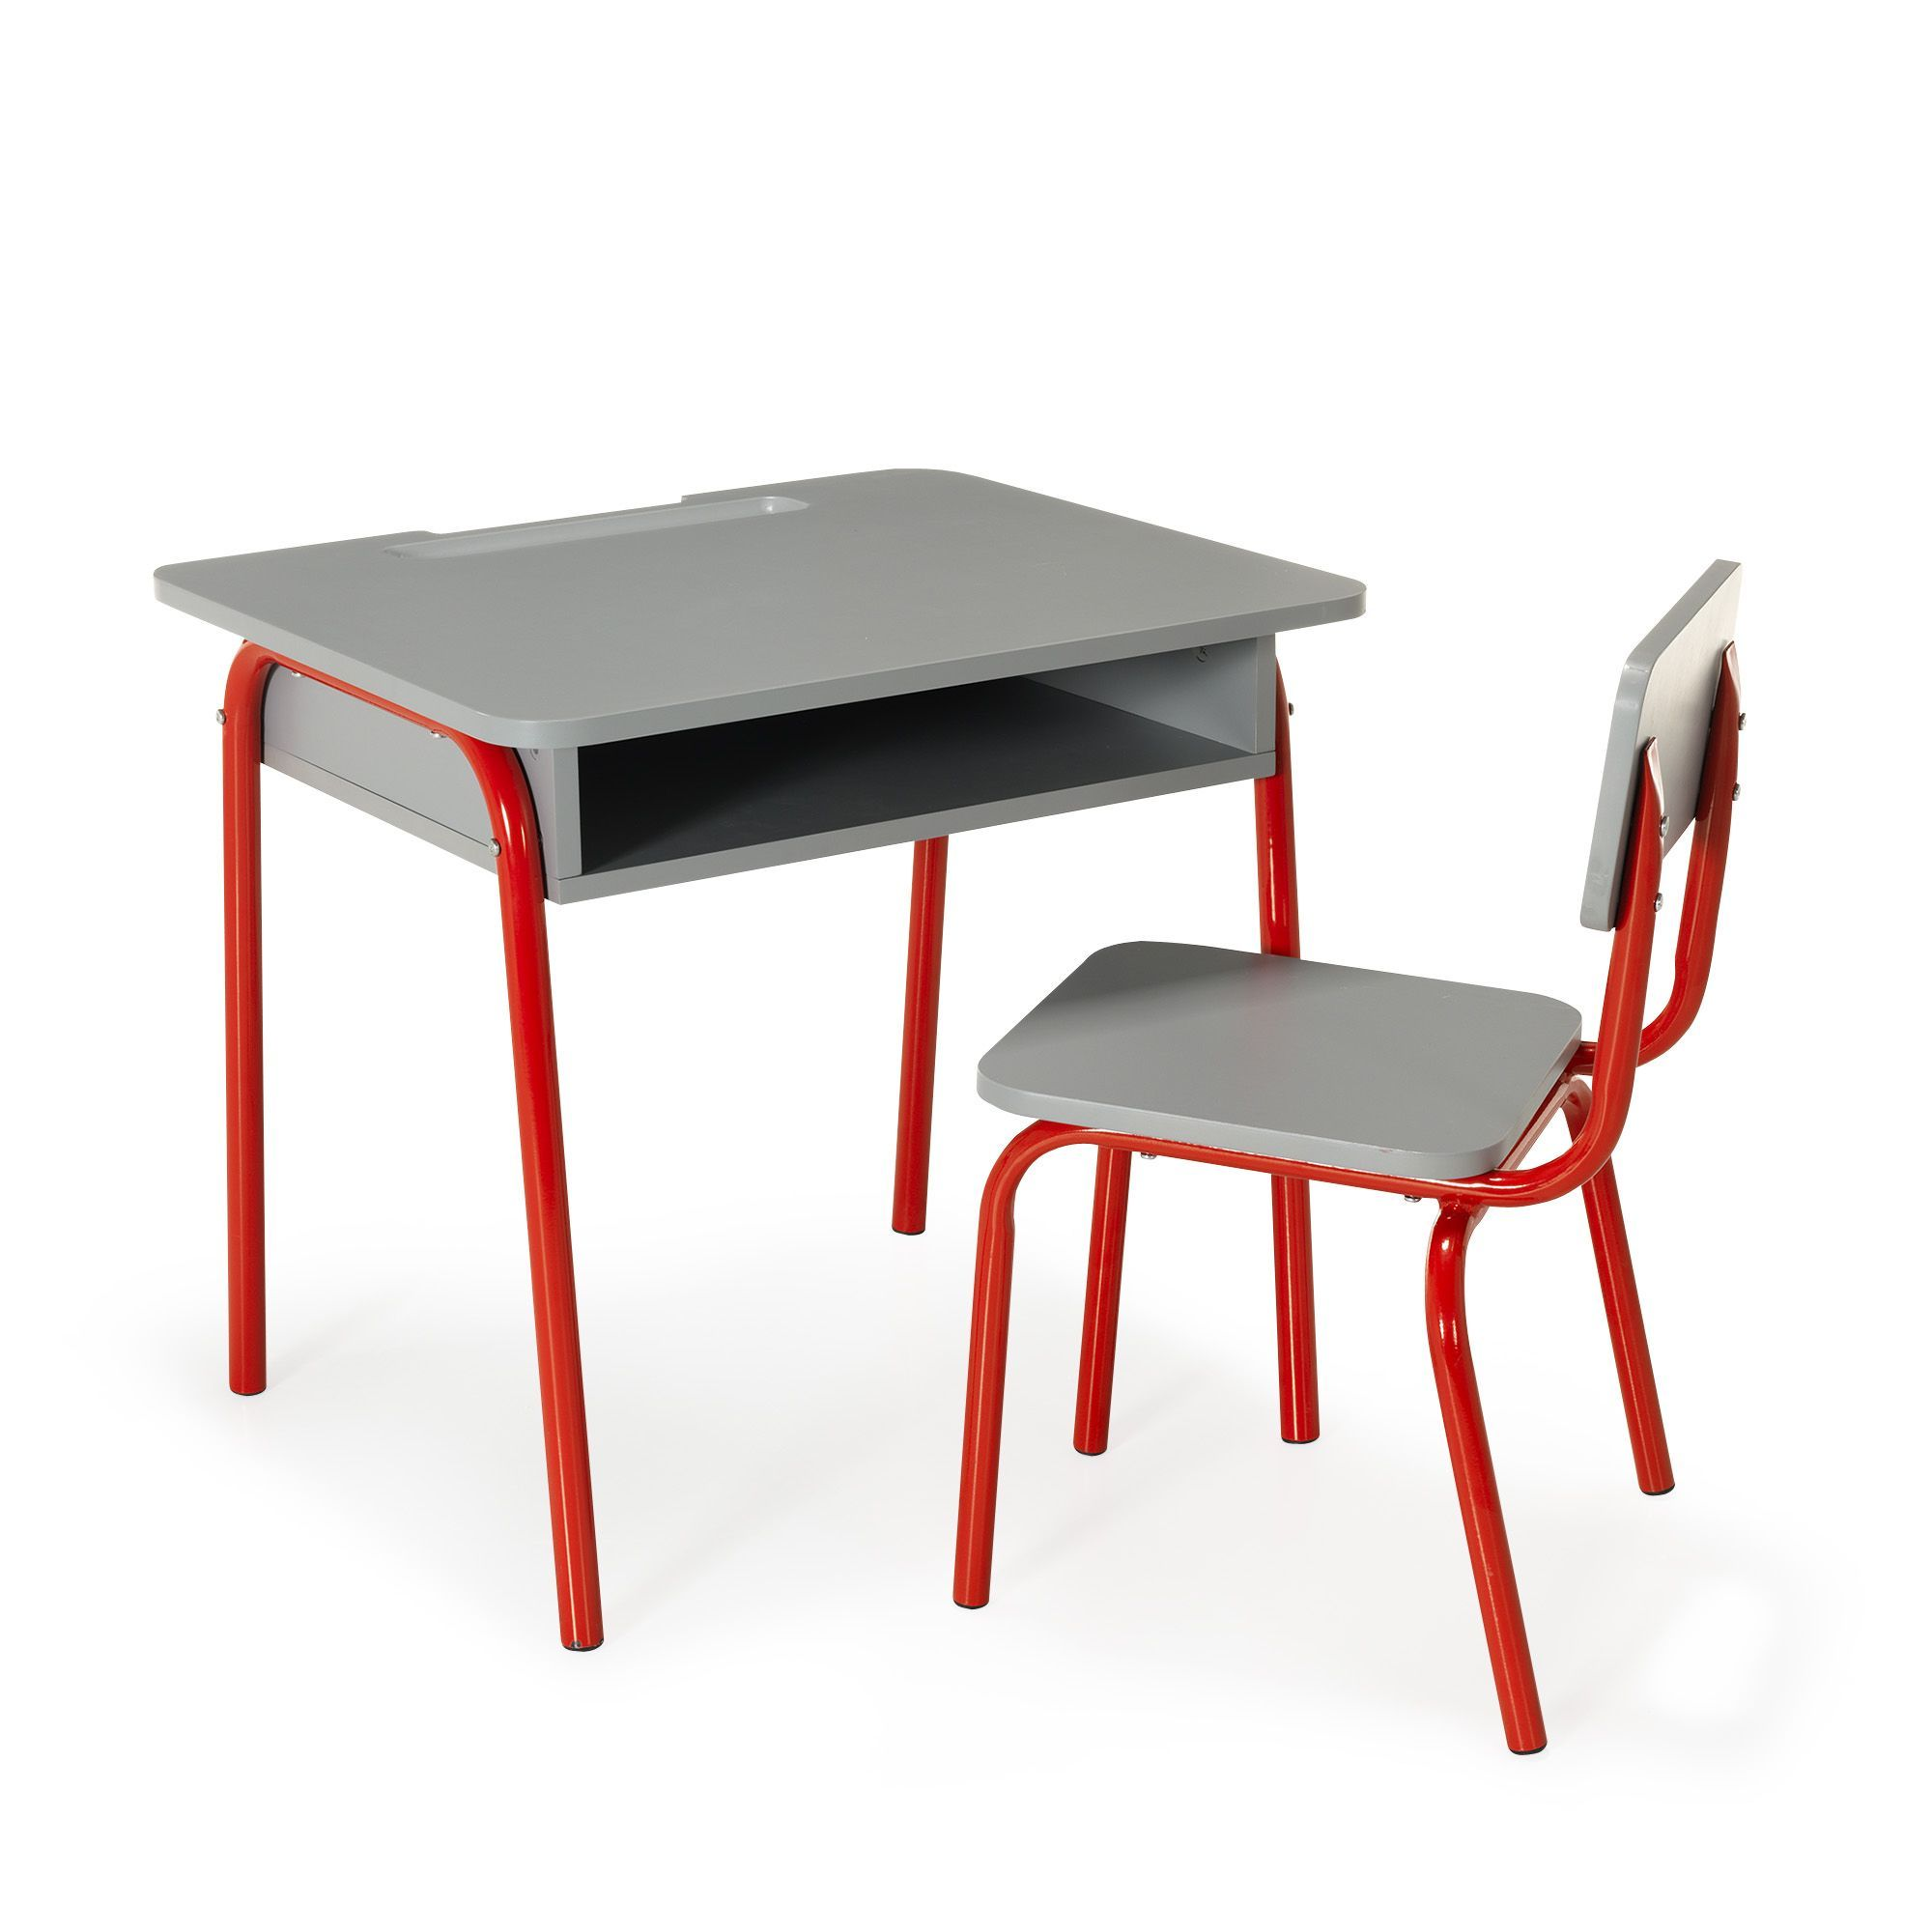 Alinea bureau junior stunning chaise de bureau alinea for Meuble bureau junior